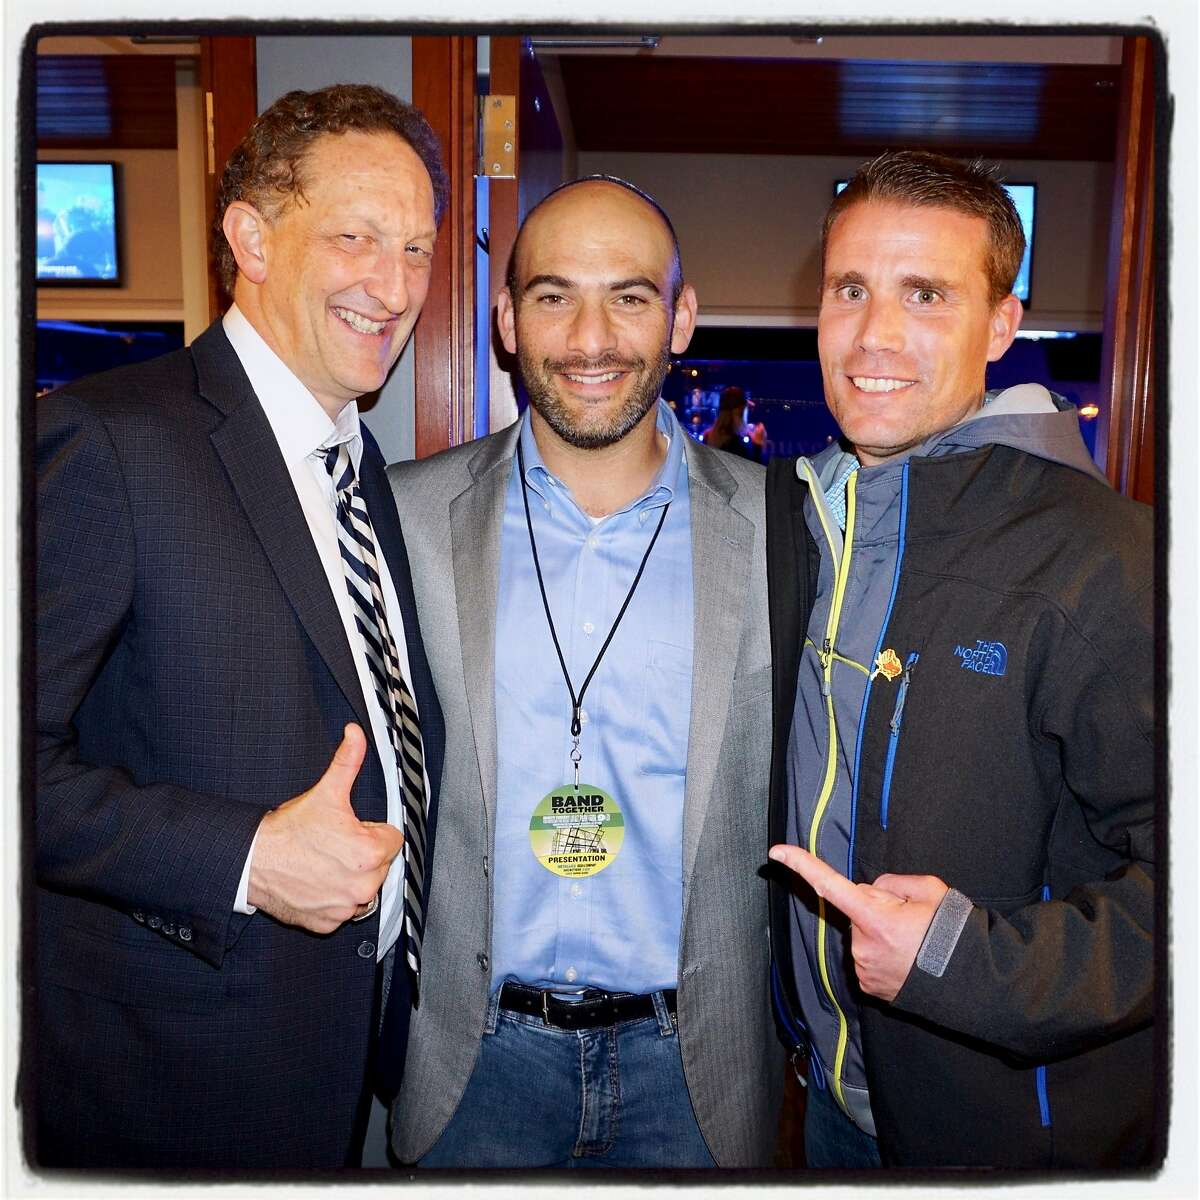 Giants CEO Larry Baer (left) with Rabbi Ryan Bauer and Calif. Sen. Mike McGuire at AT&T Park for Band Together. Nov. 9, 2017.